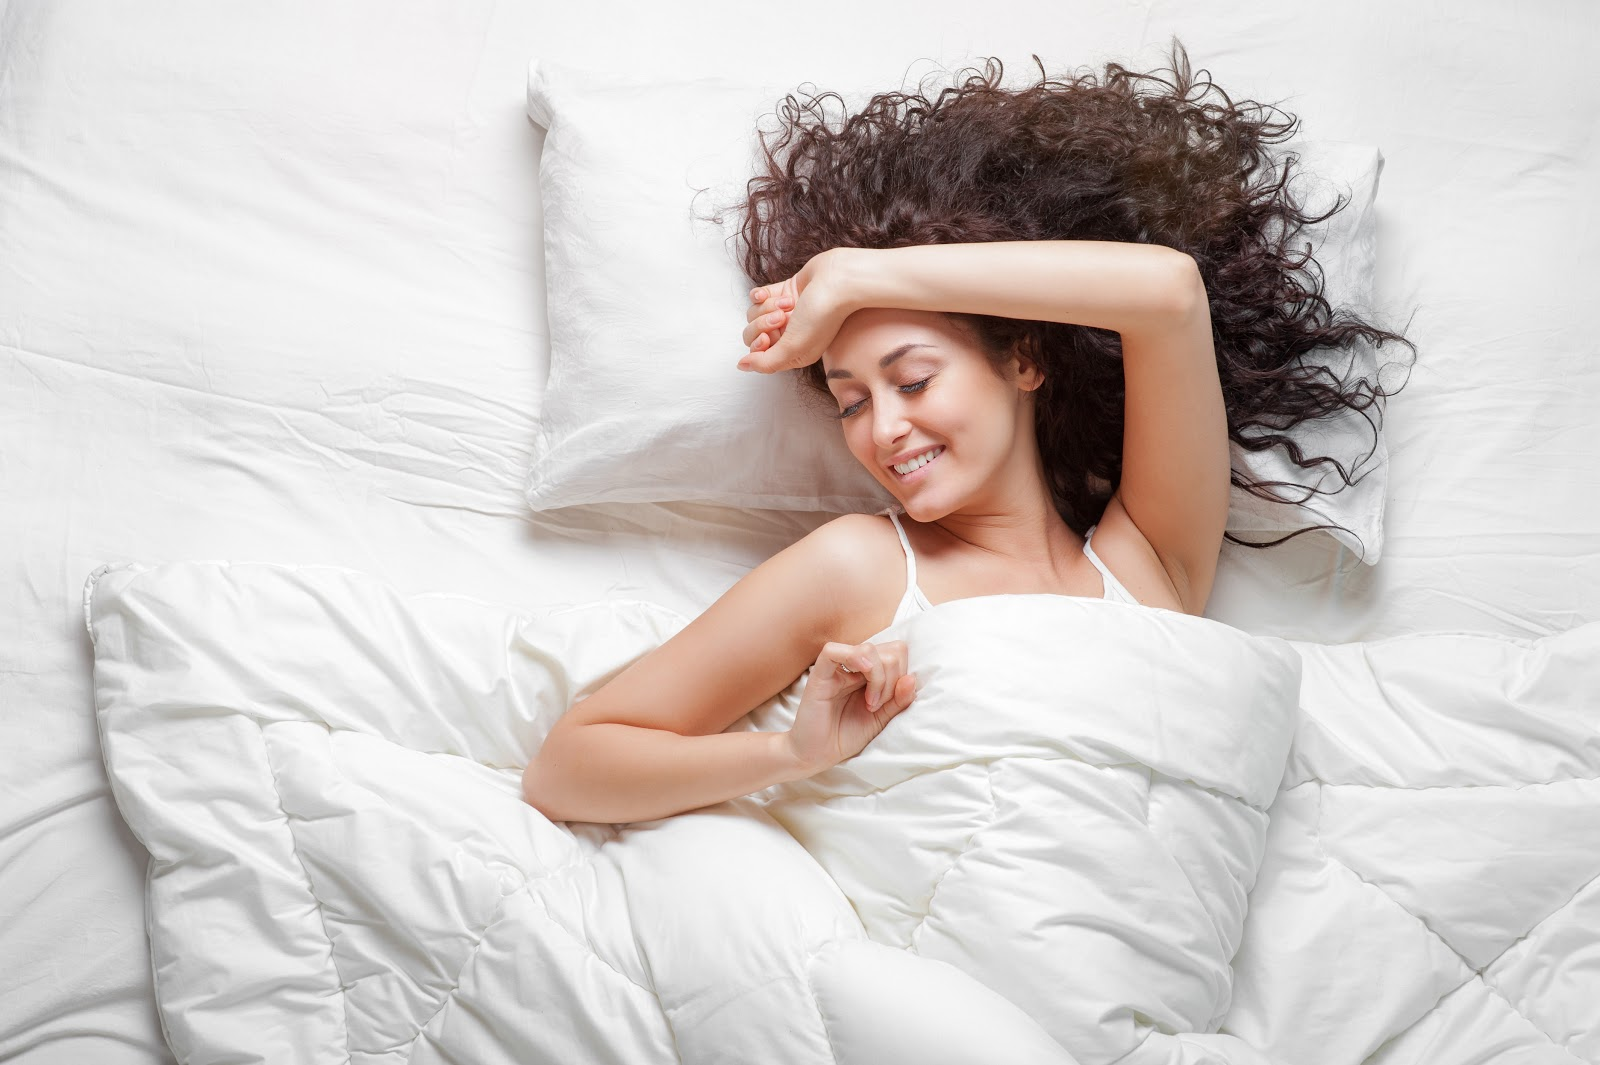 Woman stretching out in bed